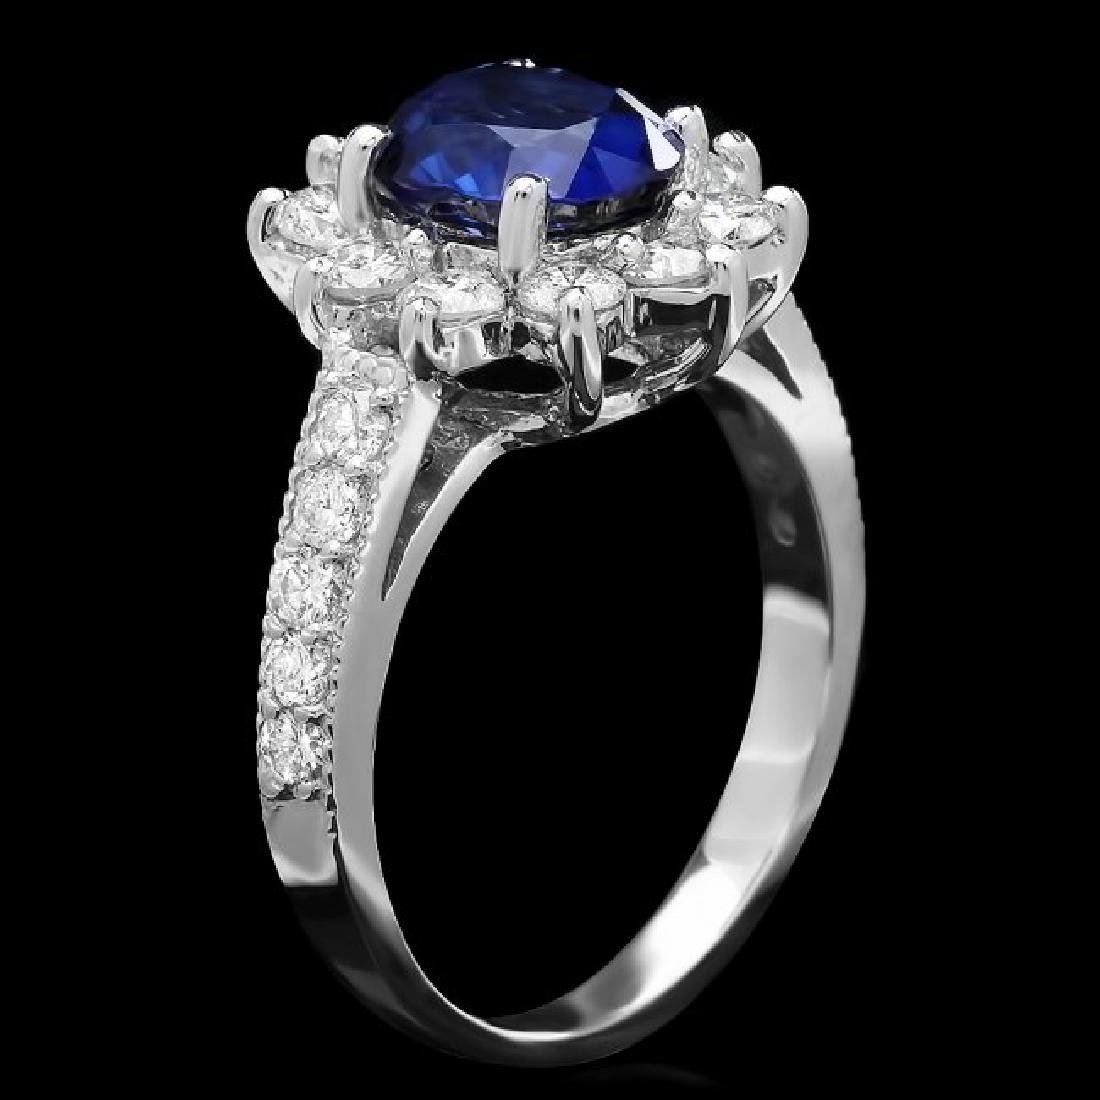 14k Gold 2.50ct Sapphire 1.00ct Diamond Ring - 2